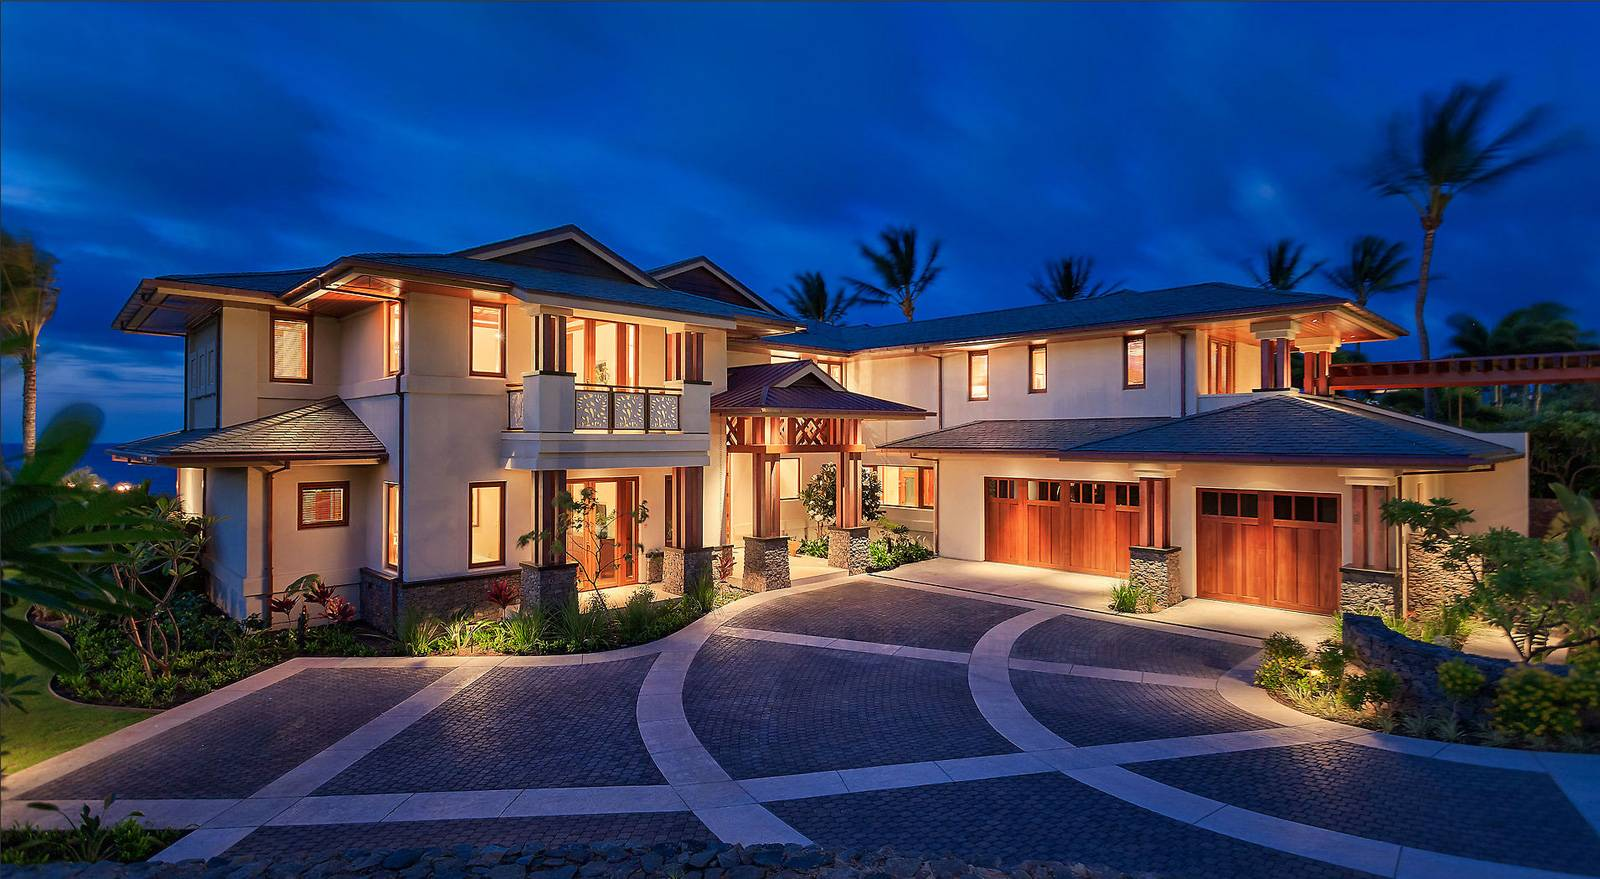 Nice houses on the beach - Most Beautiful Beach Houses Maui House Pics